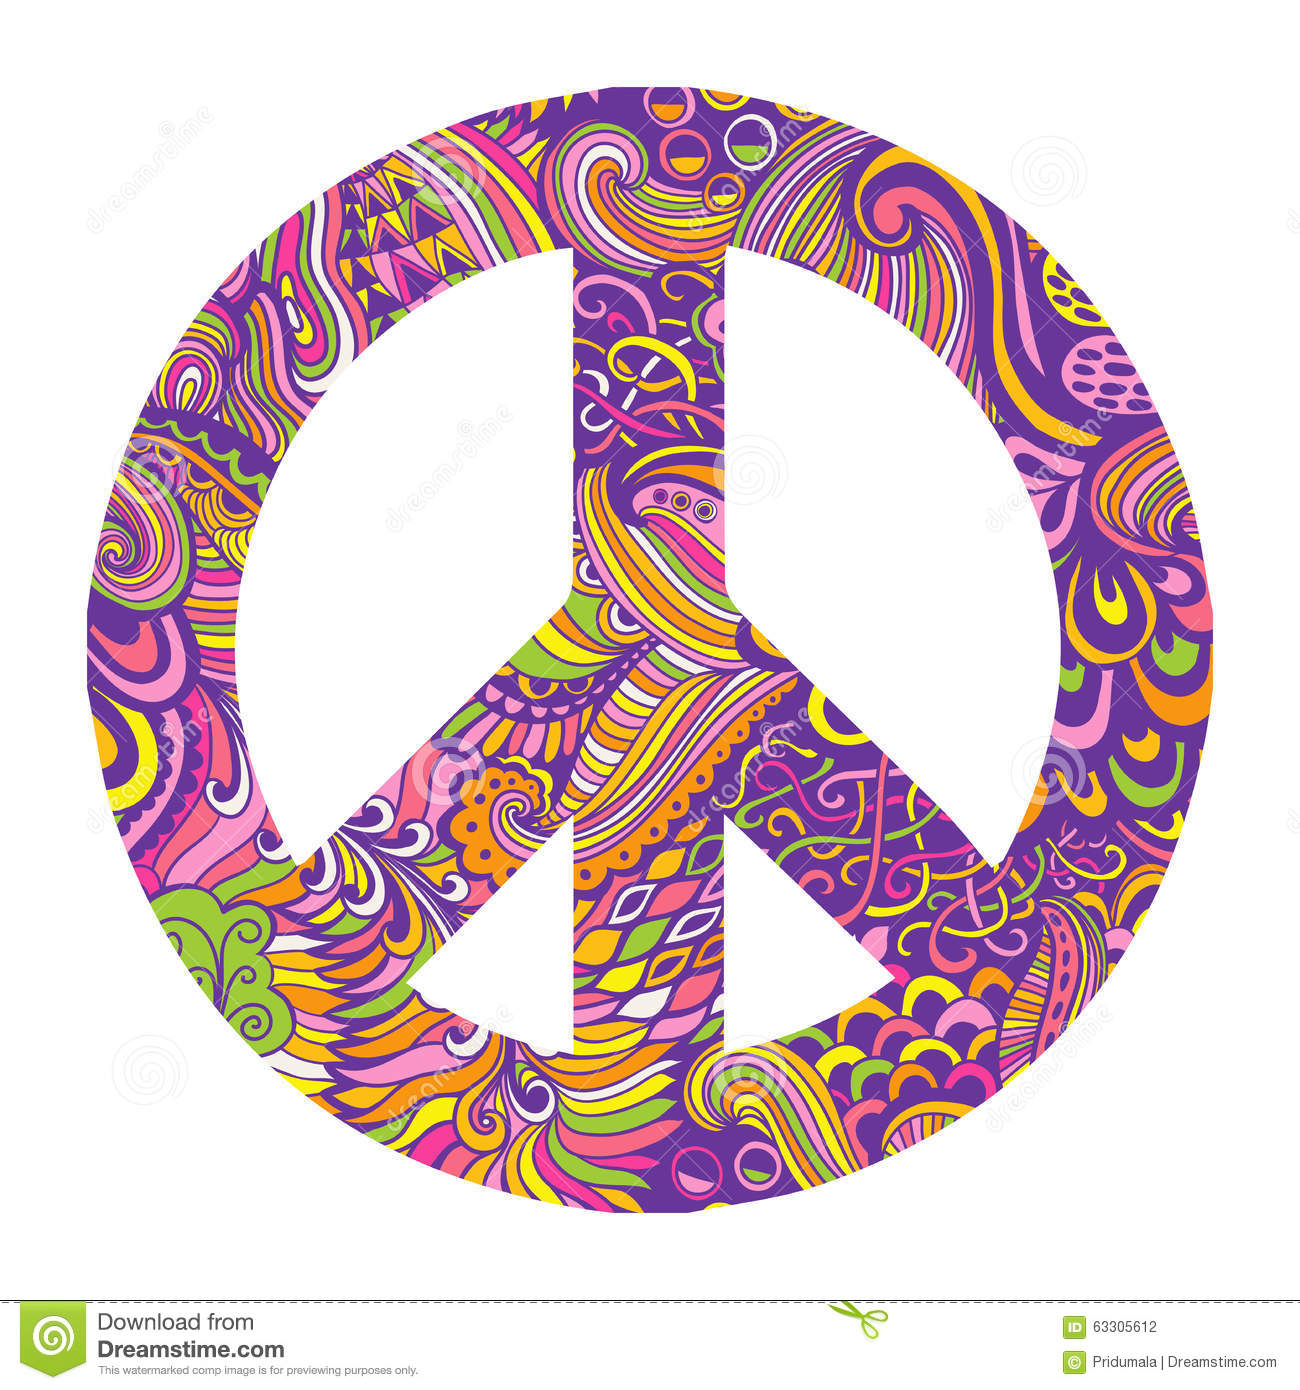 Peace sign pictures to print and color Peace sign coloring pages Free Printable Pictures